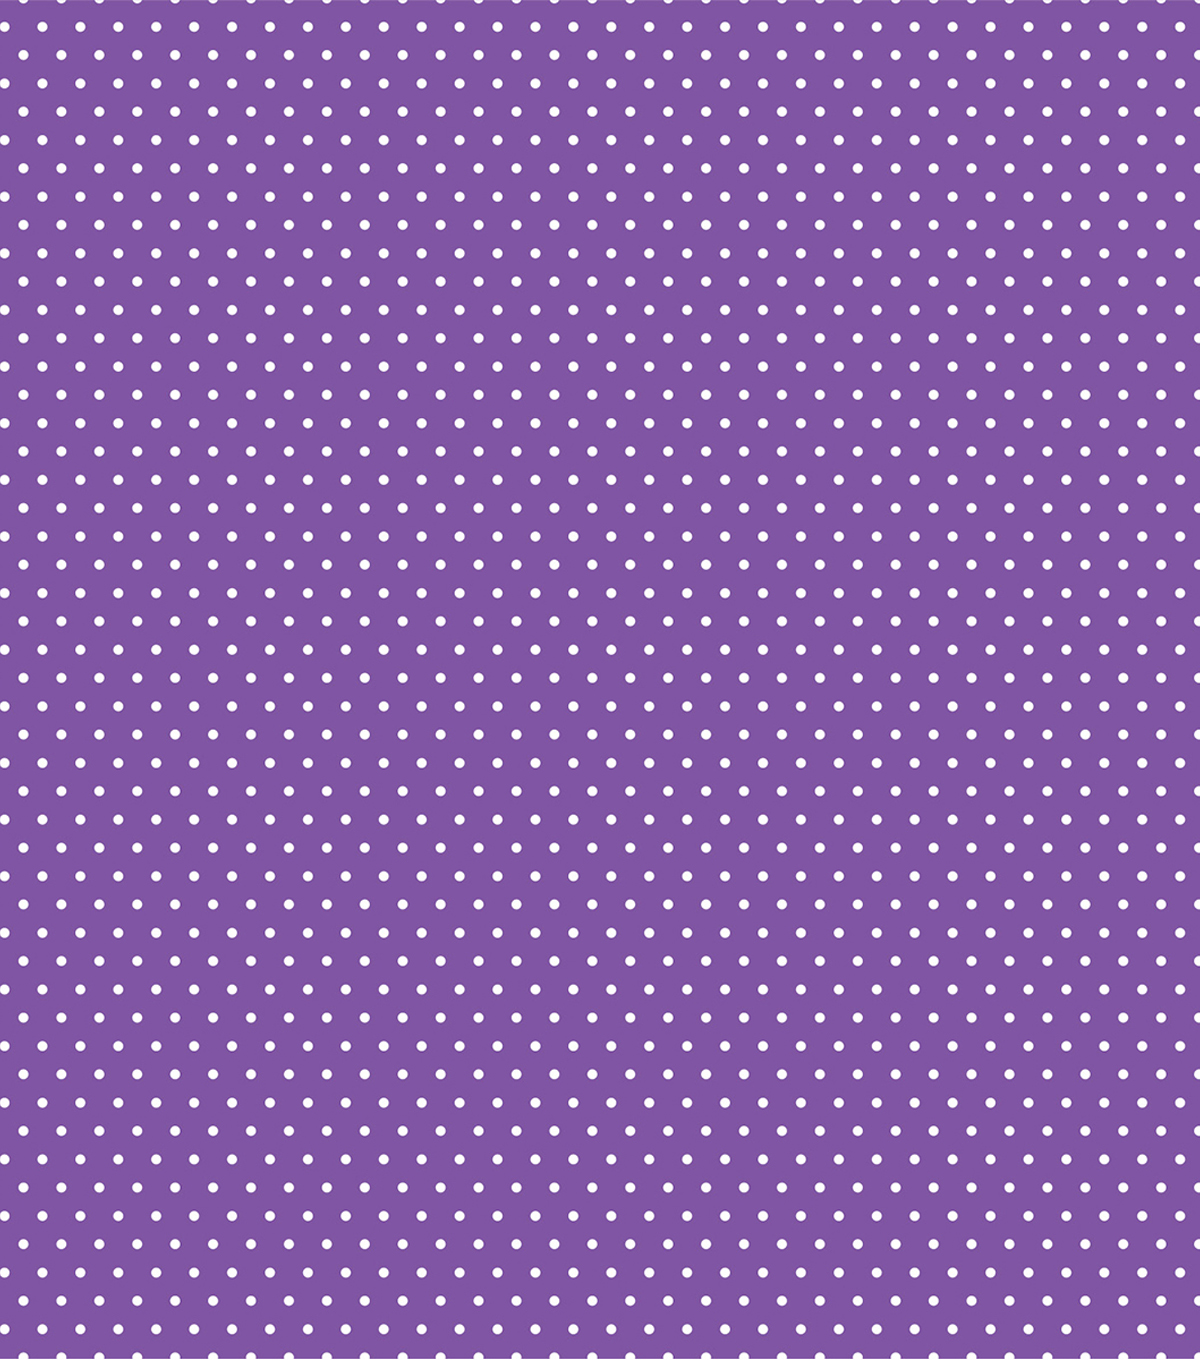 Basics Patterned Cardstock 12\u0022X12\u0022-Purple Small Dot